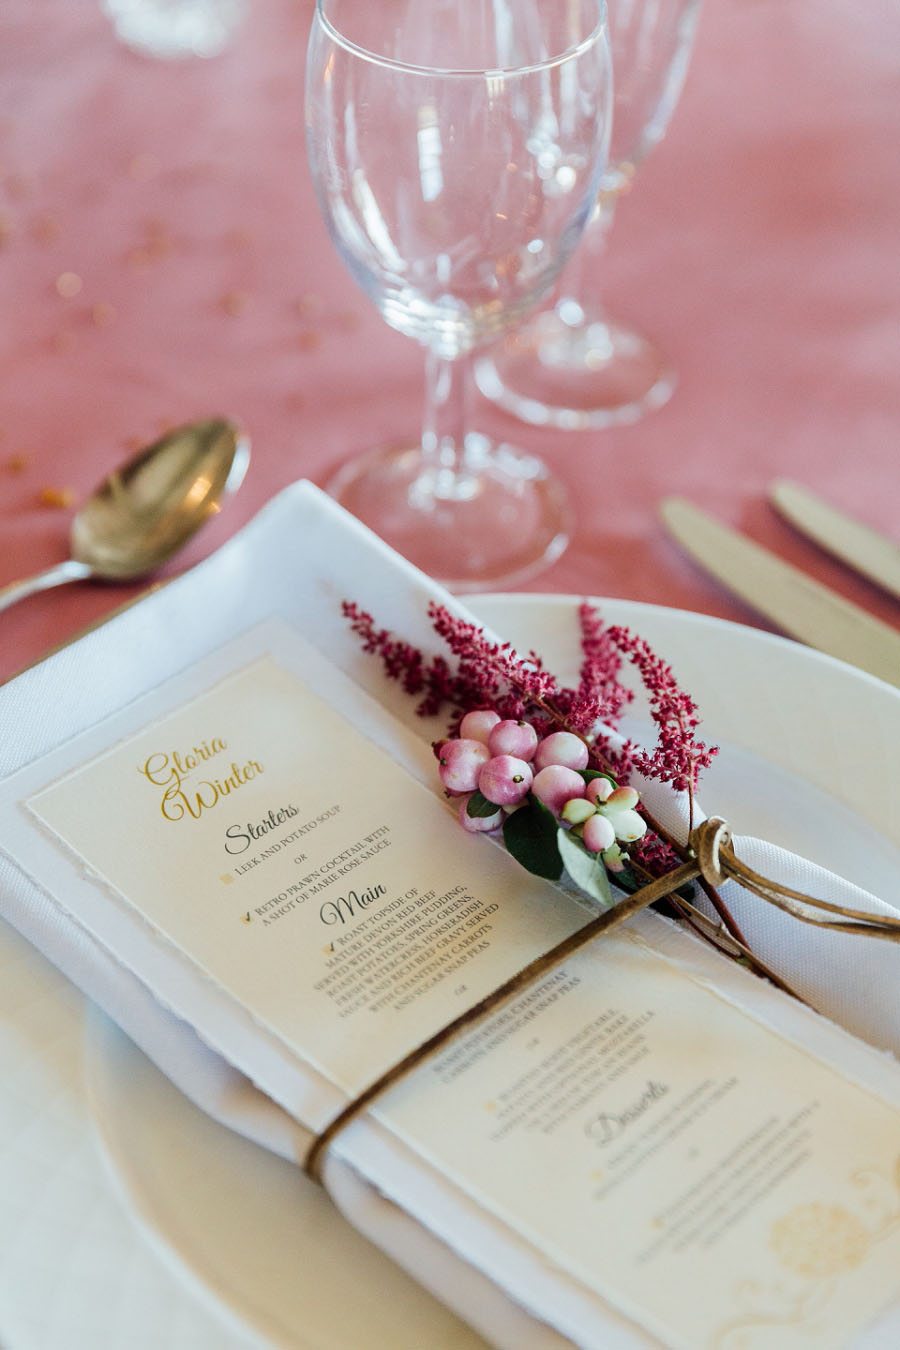 A Romantic Inspirational Bridal Shoot With Touches of Boho Glam & Gold!